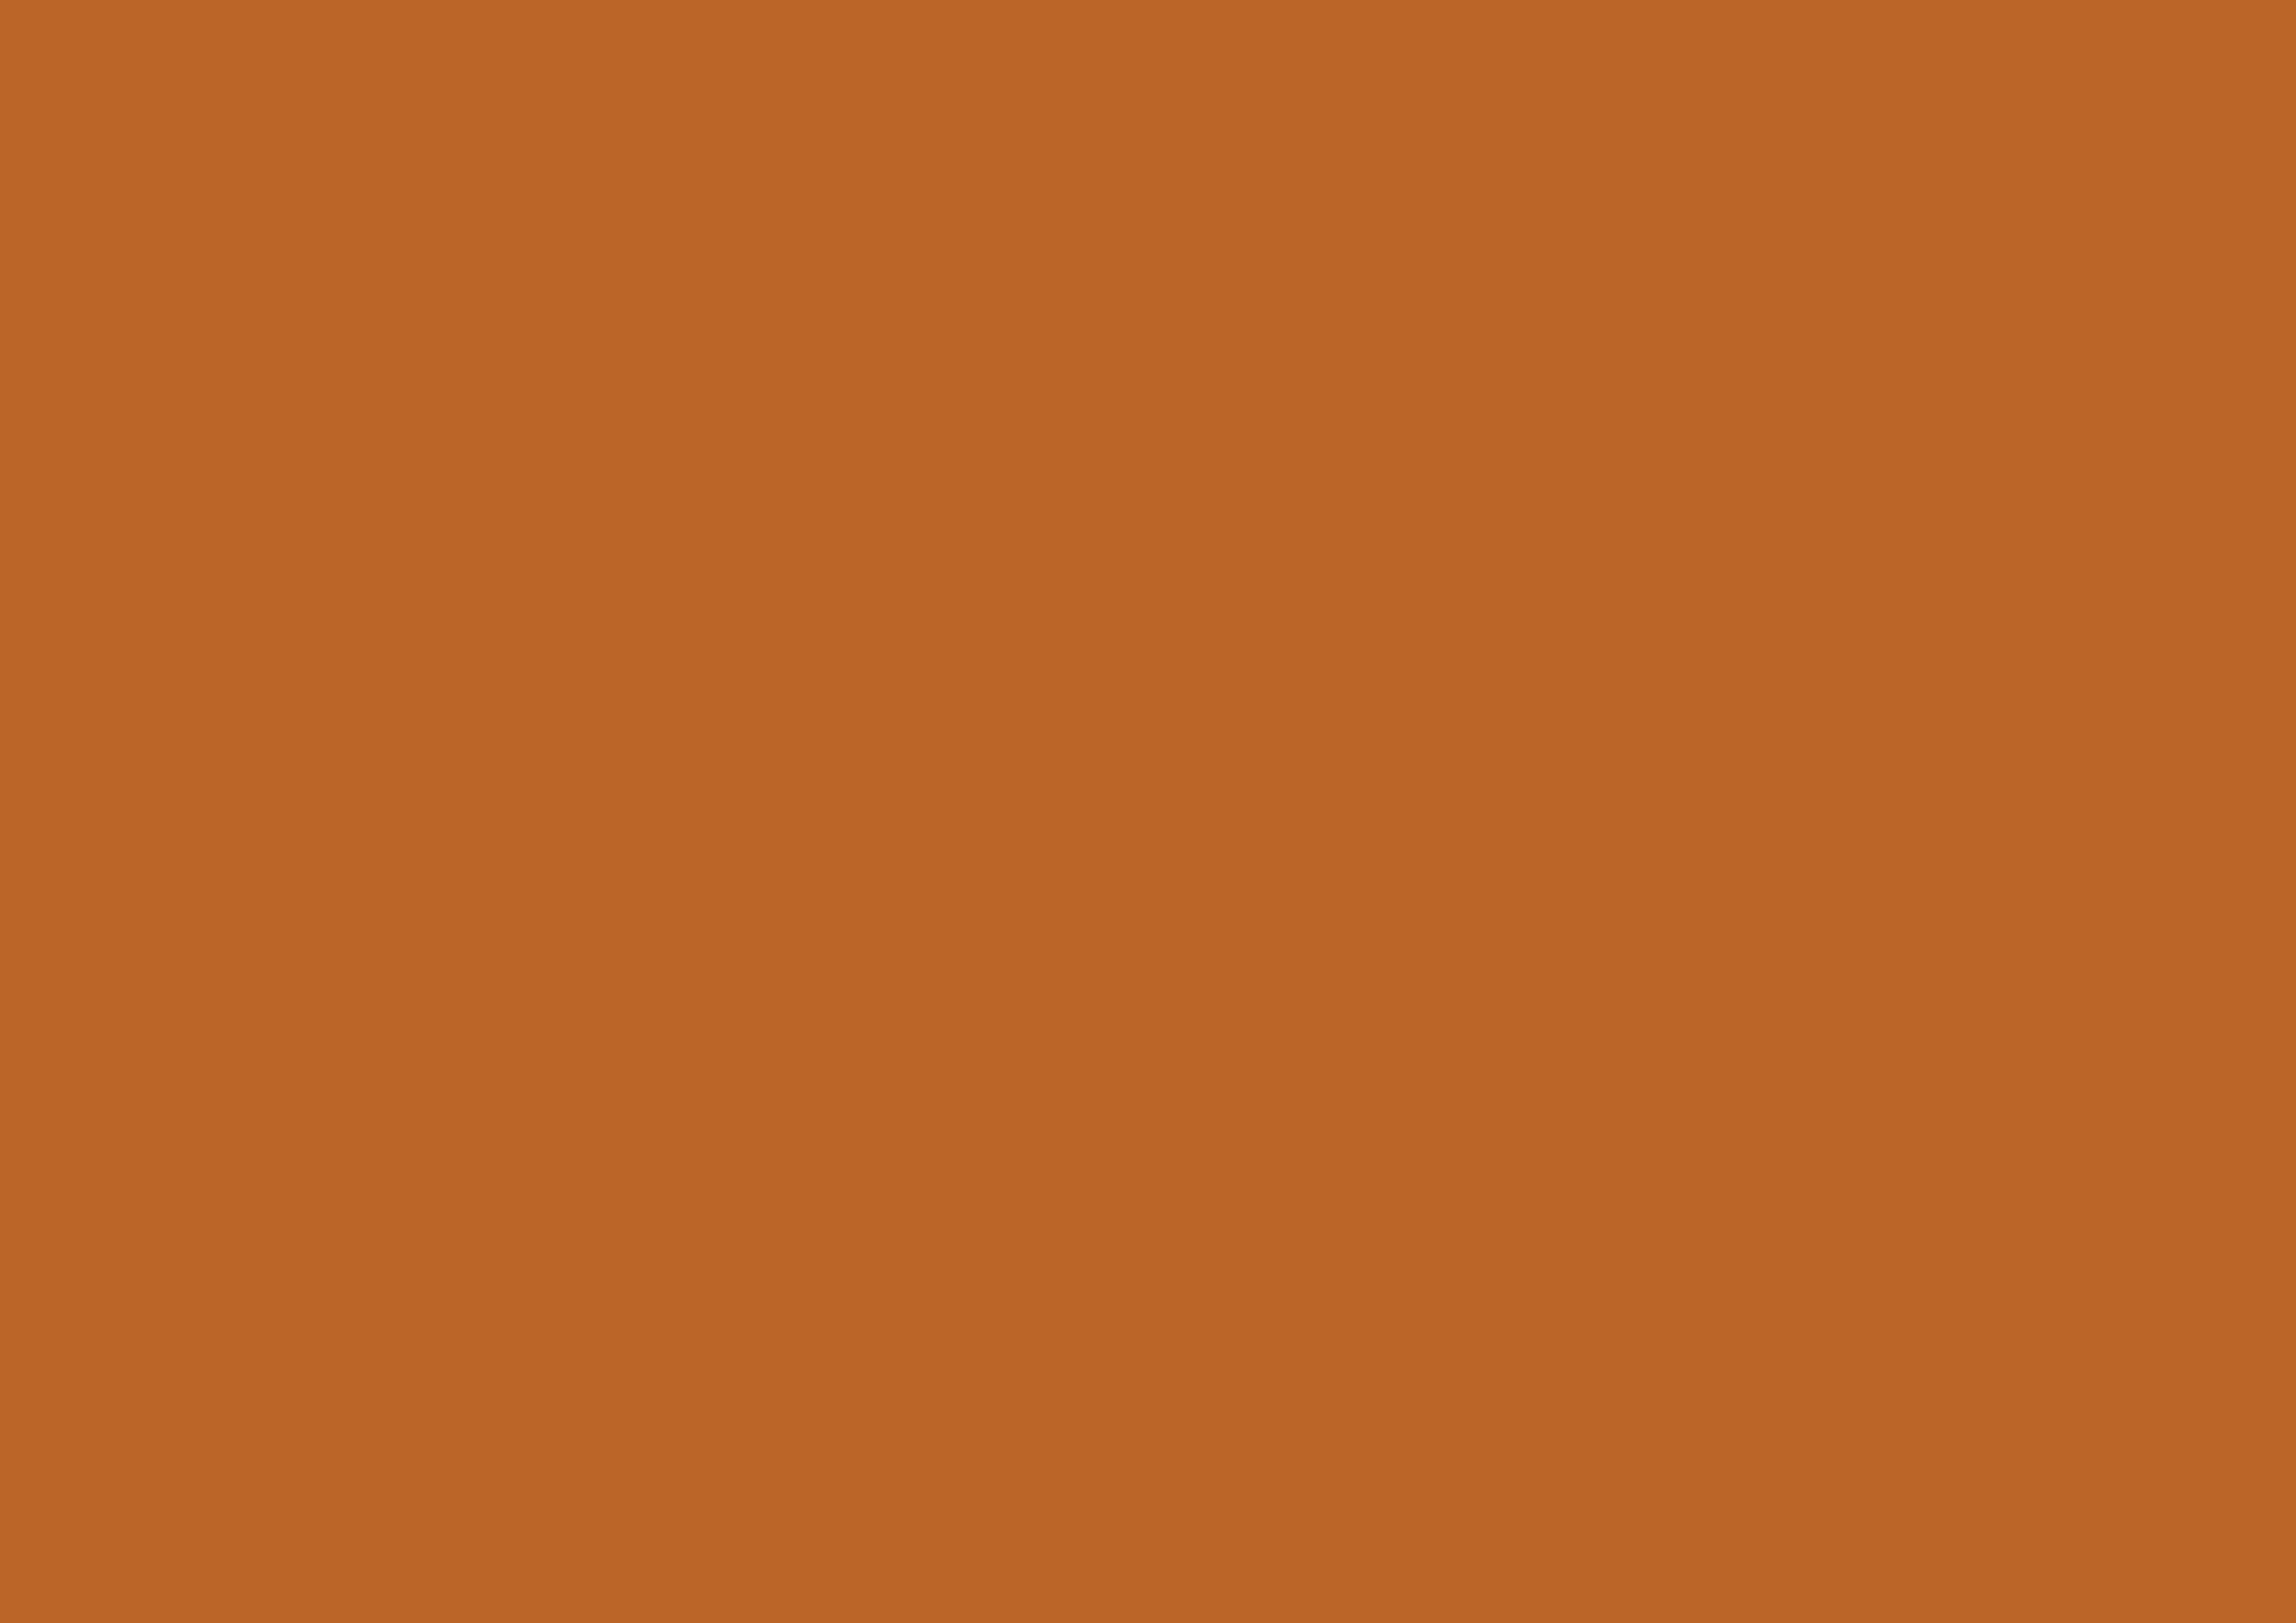 3508x2480 Ruddy Brown Solid Color Background